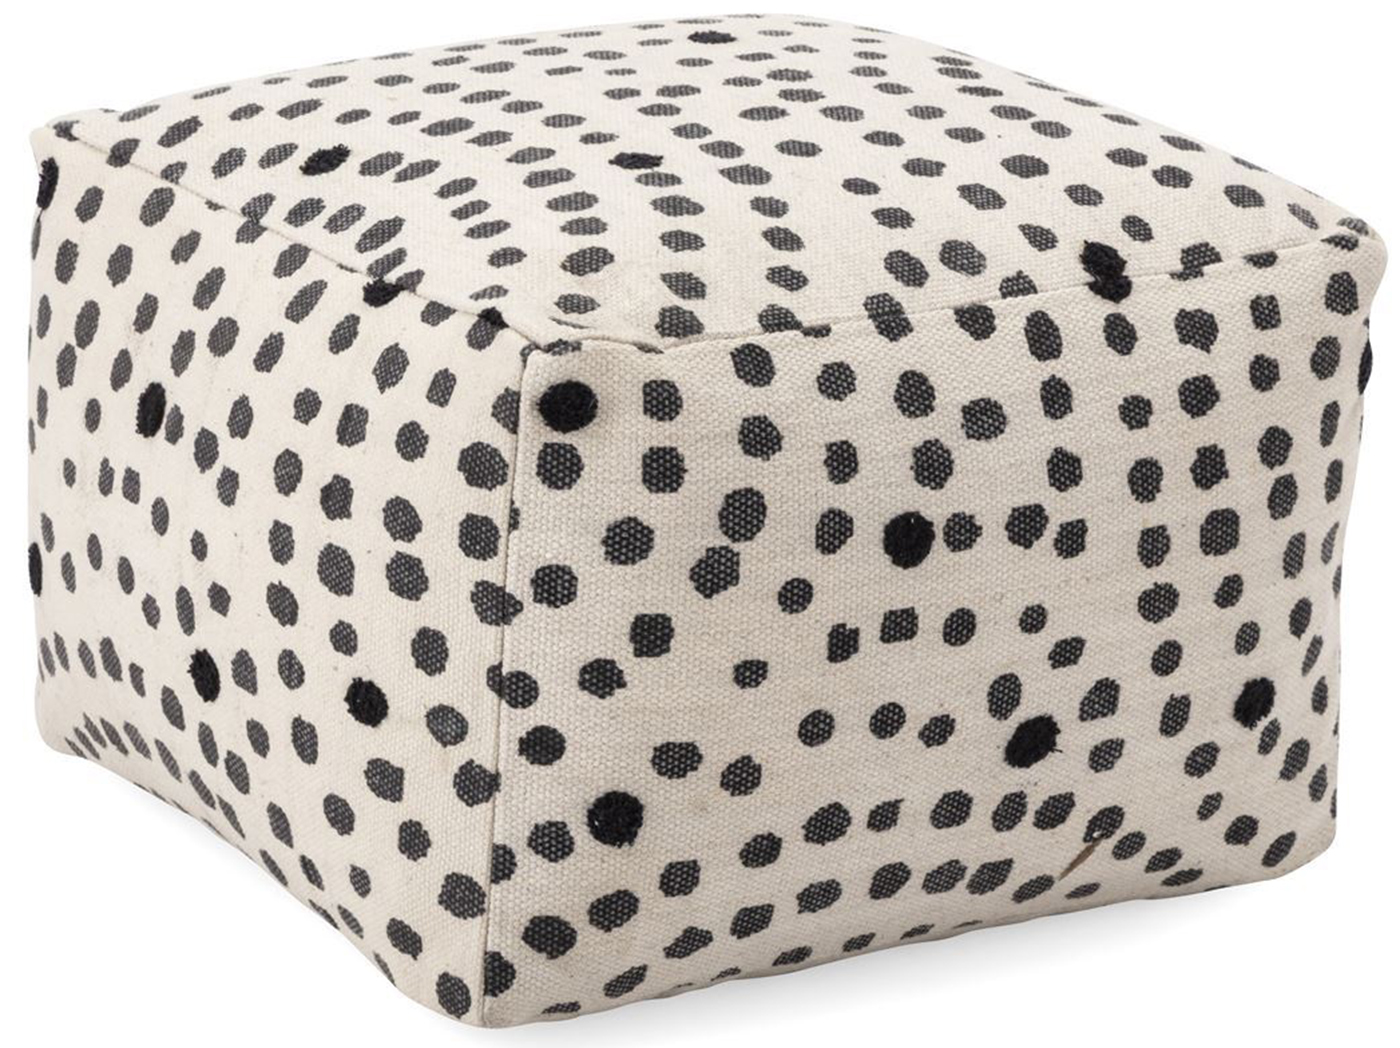 "Black and White Polka Dot Pouf 23""W x 16""H"